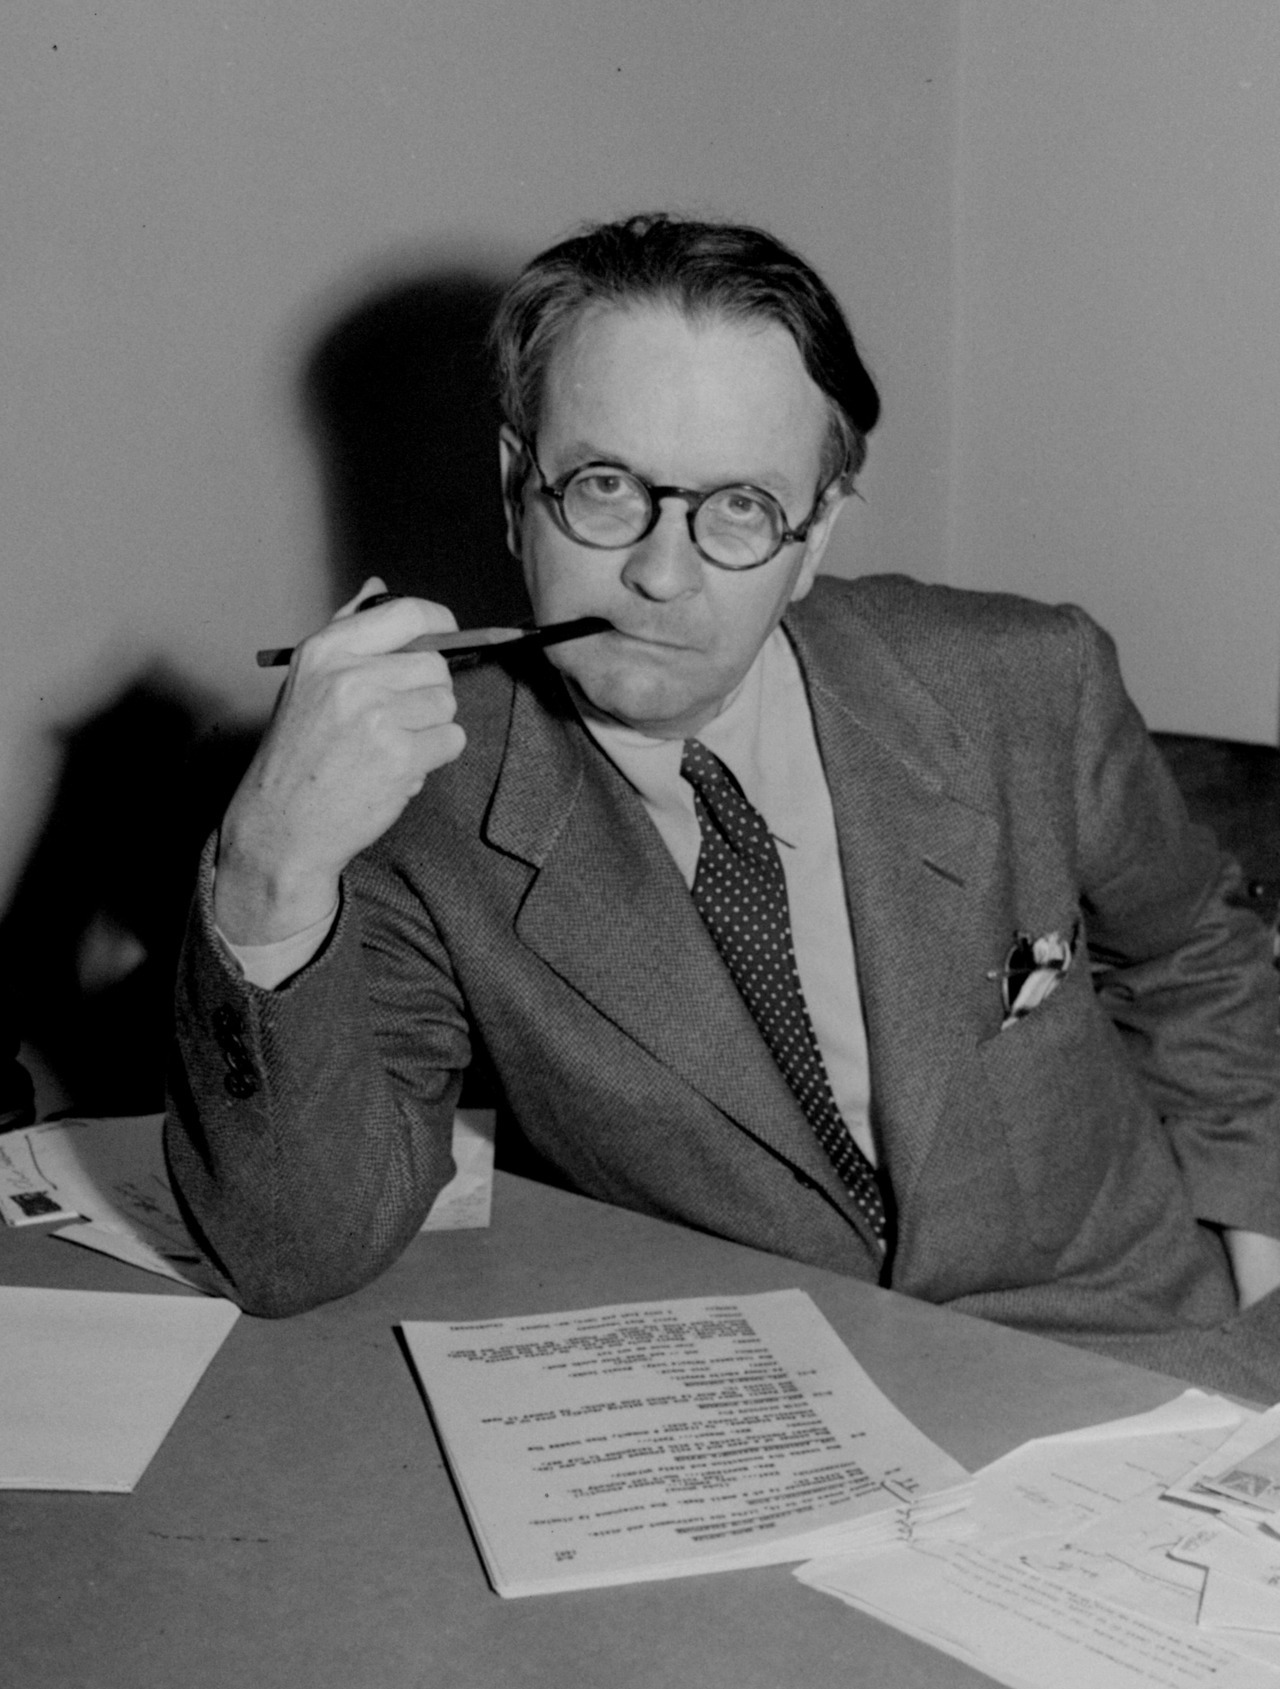 Raymond Chandler's poetry